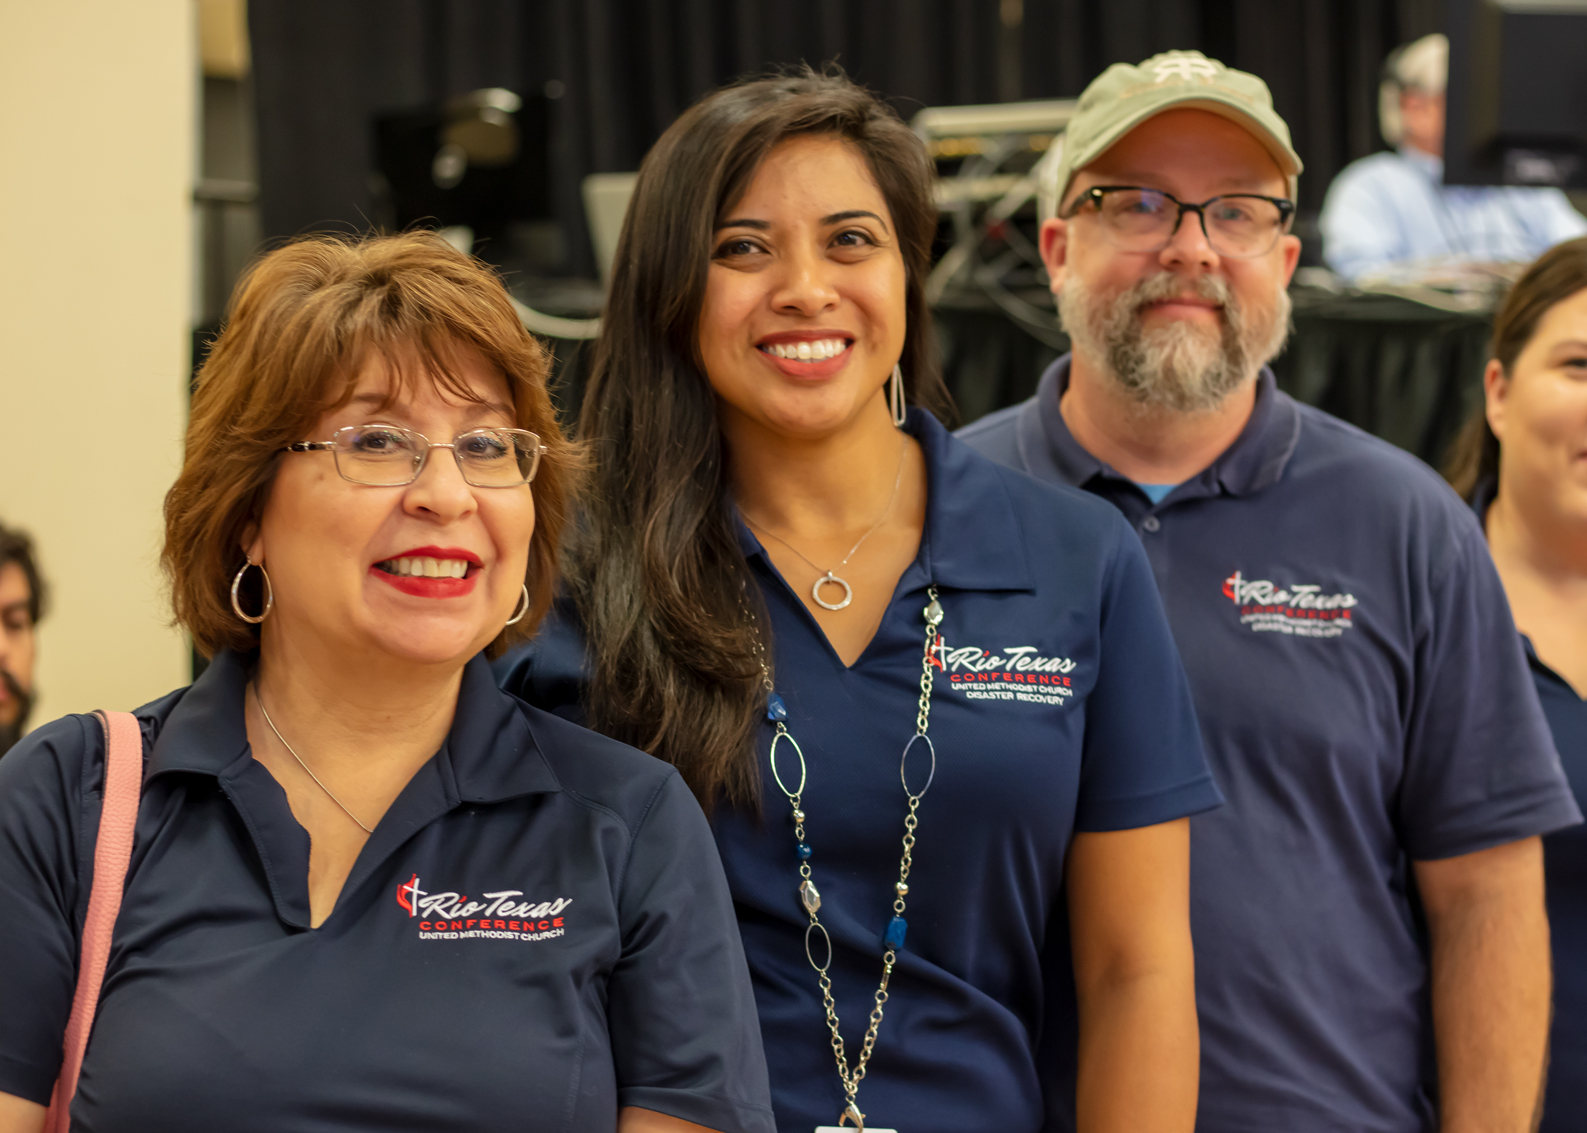 2019 Rio Texas Annual Conference Shot by AWN 07.jpg